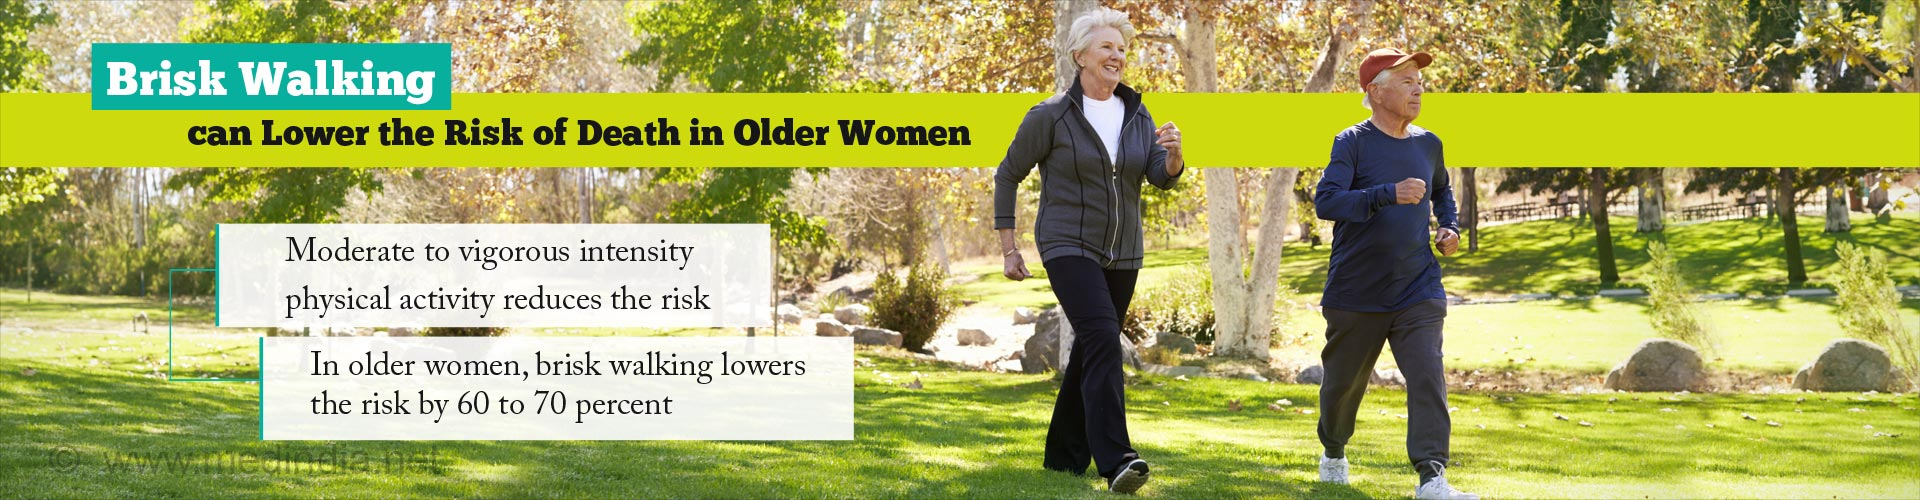 Brisk walking can lower the risk of death in older women